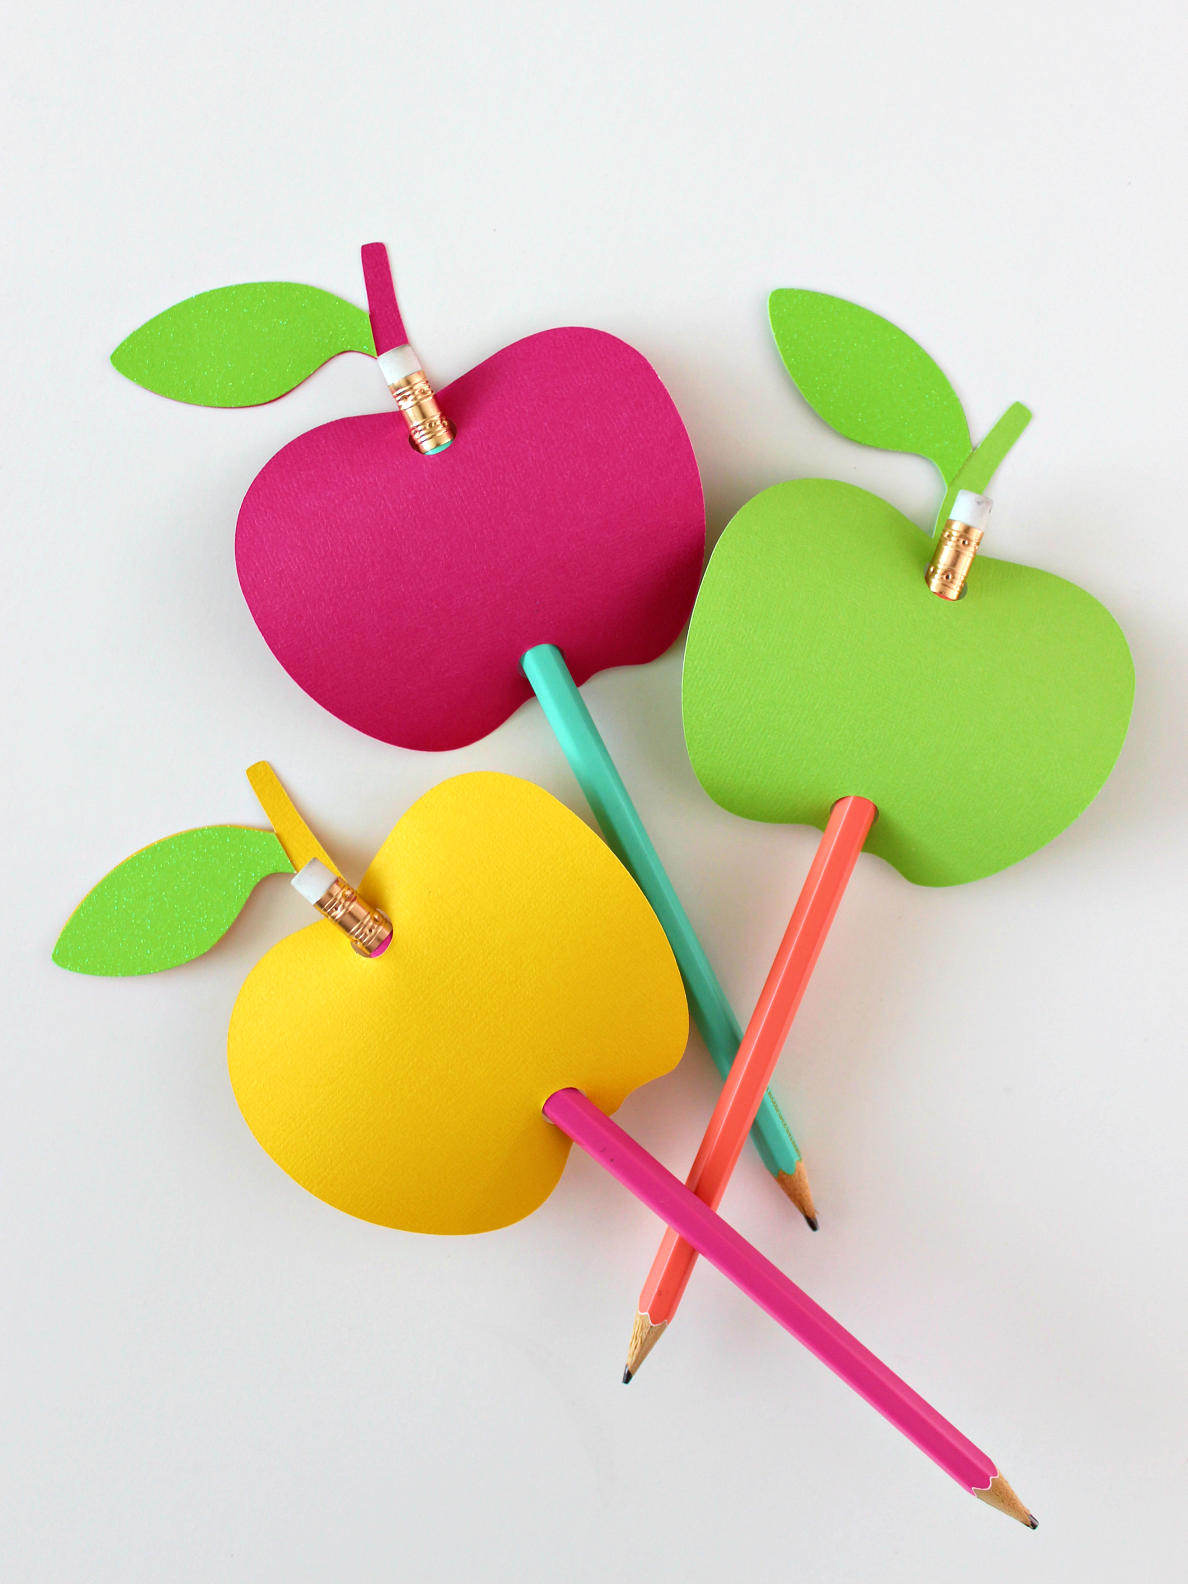 APPLE-SHAPED PENCIL TOPPERS (WITH FREE CUT FILE)